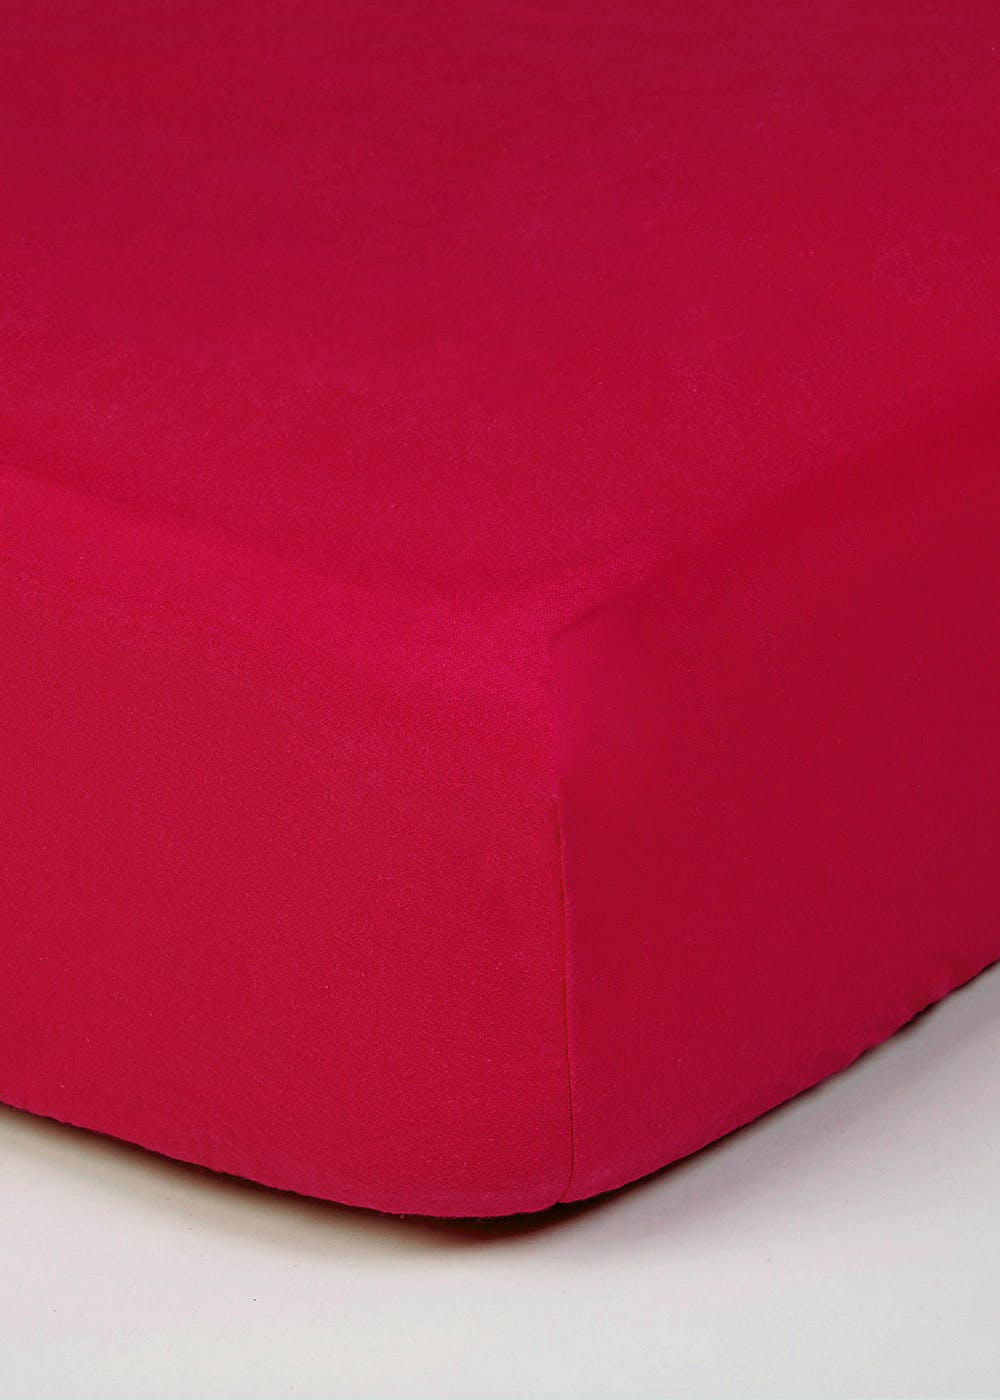 Easycare Polycotton Deep Fitted Sheet Red Matalan